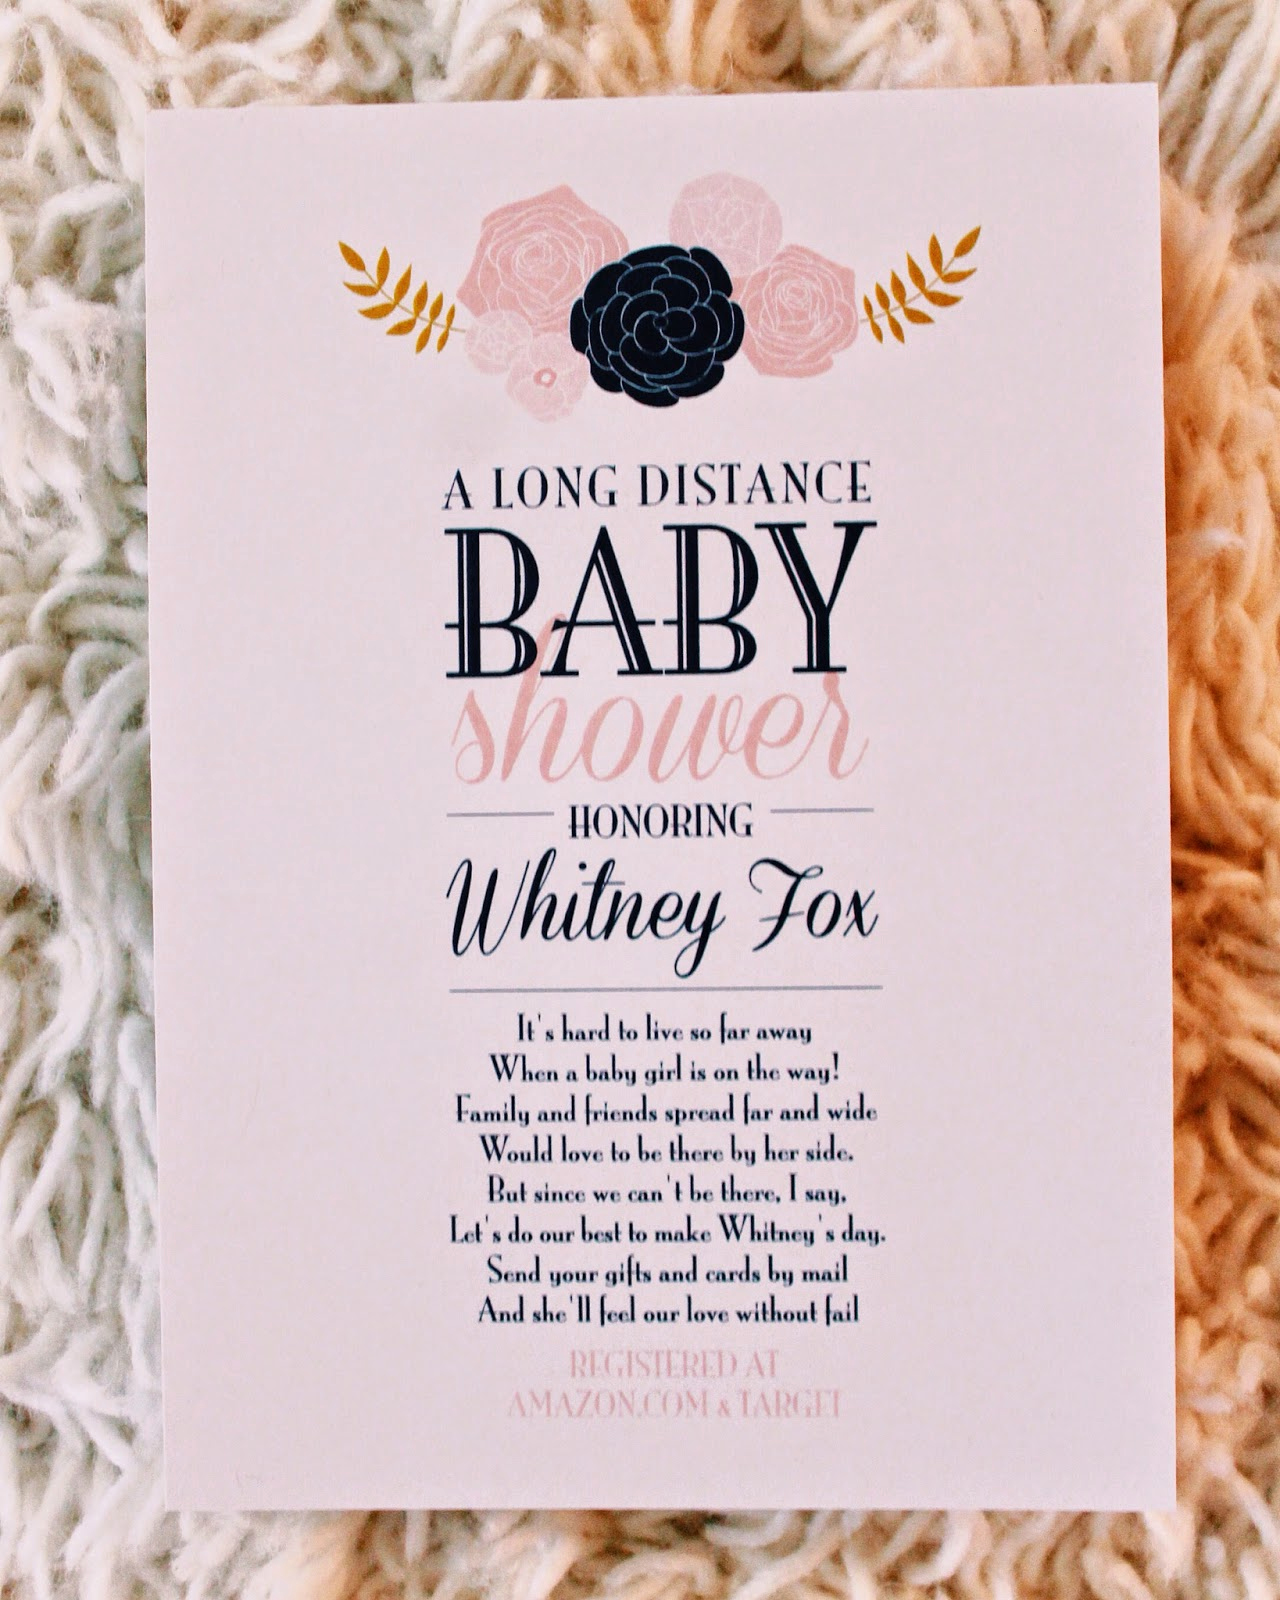 Baby Shower Invitation Ideas New Life as A Fox Long Distance Baby Shower